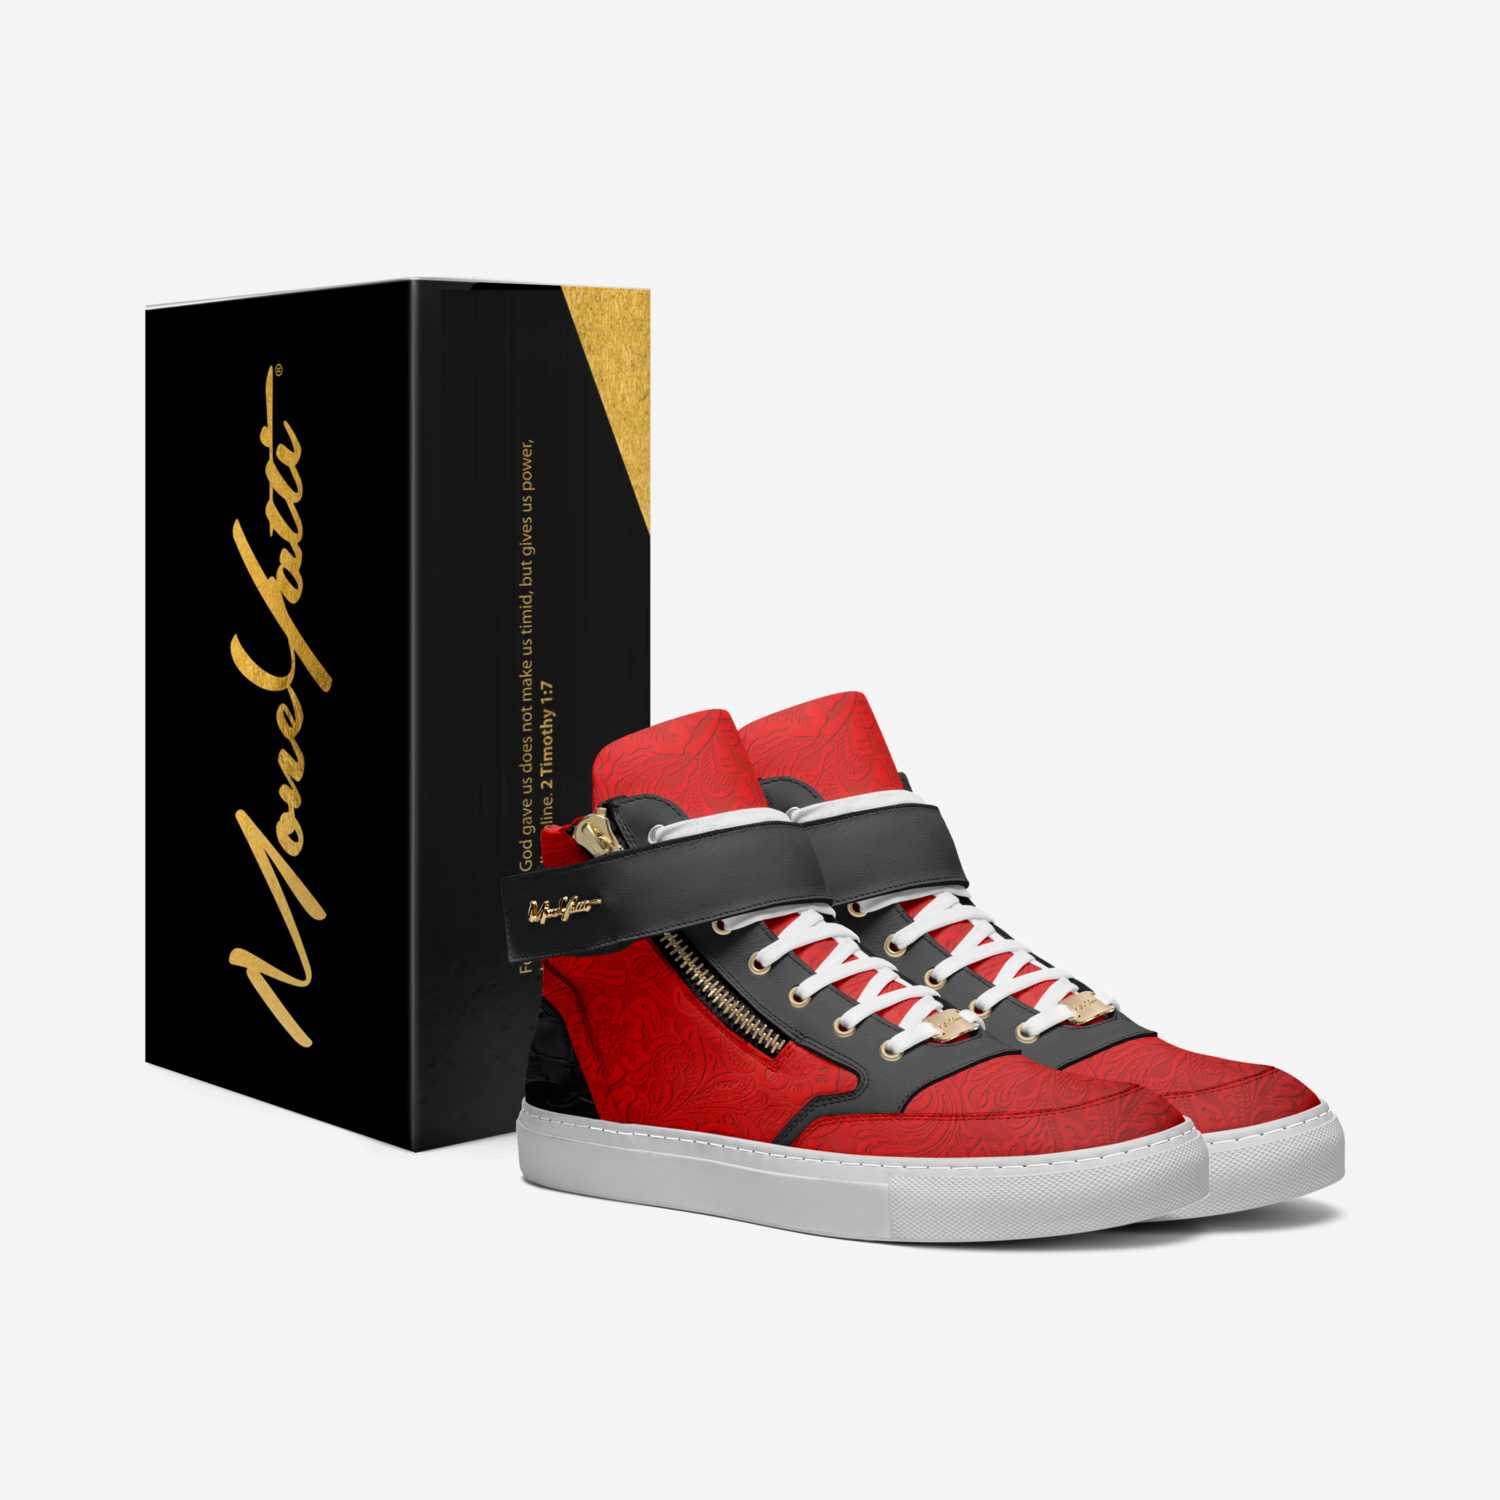 Masterpiece 40 custom made in Italy shoes by Moneyatti Brand   Box view